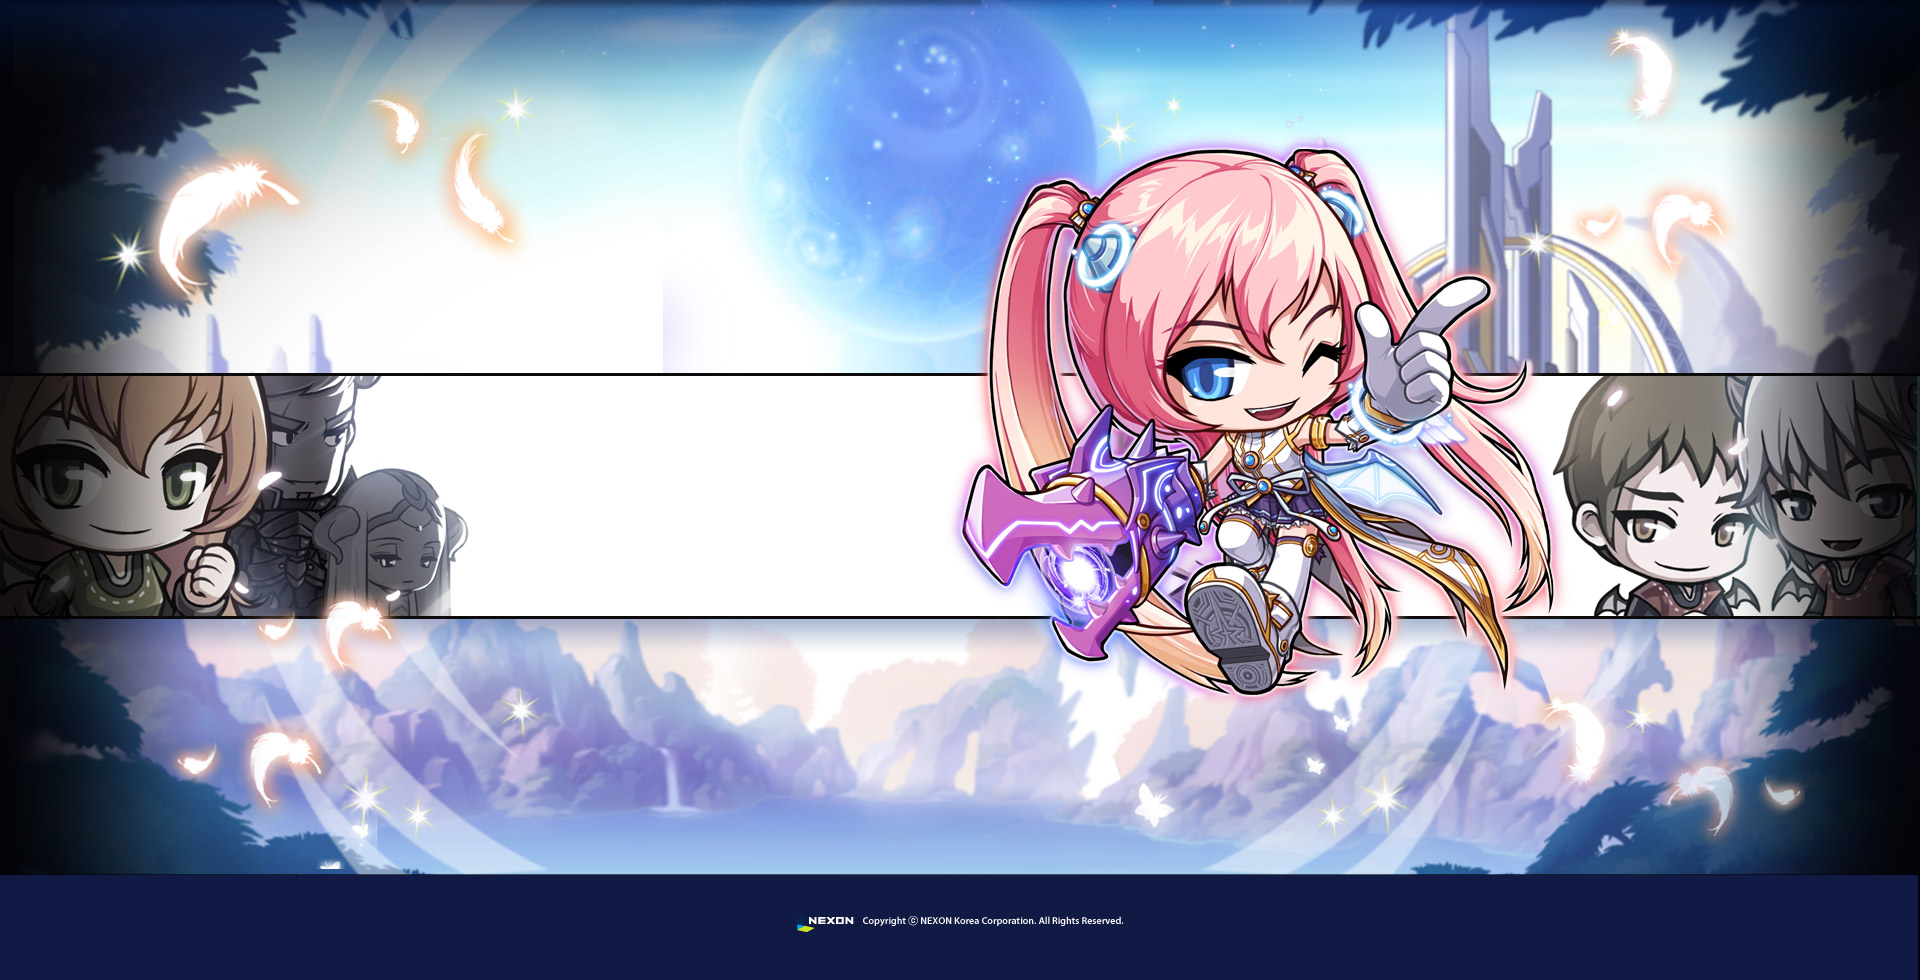 Hd Wallpaper Maplestory Wallpaper Download A Free Maplestory